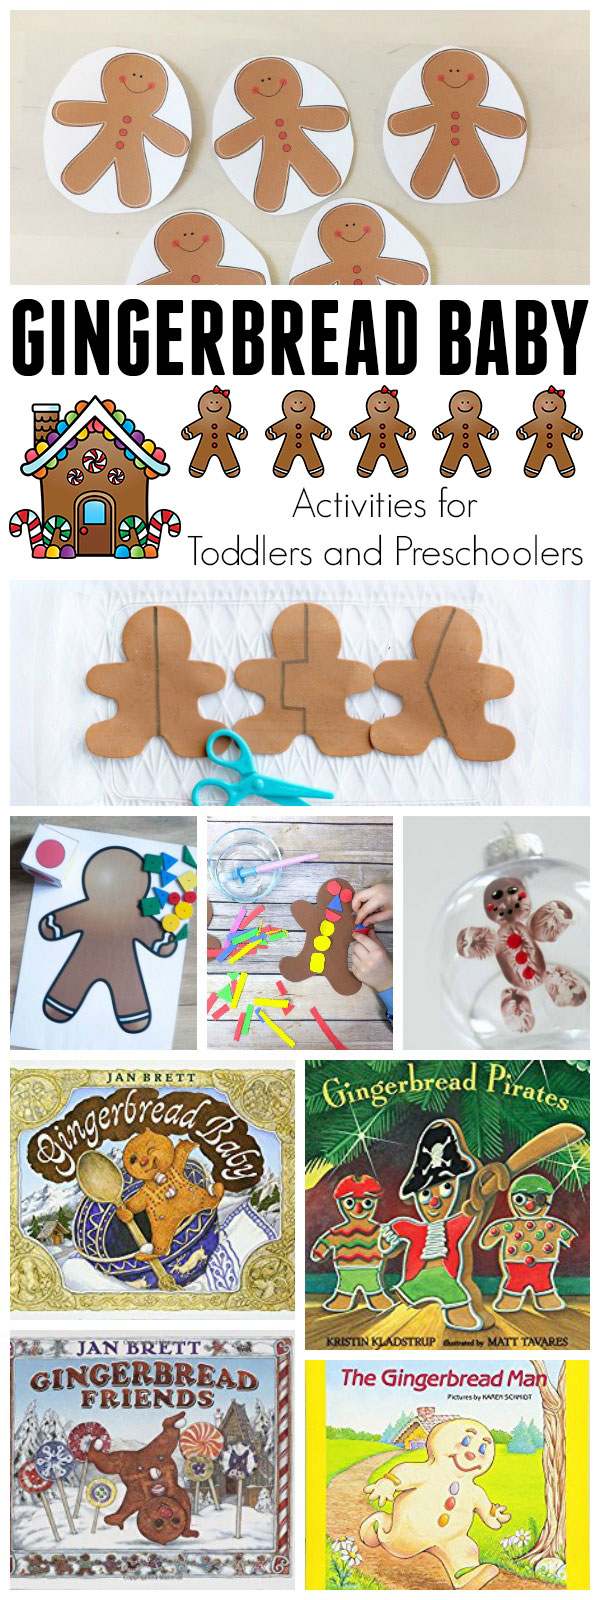 Fantastic Selection of Gingerbread activities based on the beautifully illustrated Gingerbread Baby by Jan Brett for Toddlers and Preschoolers.